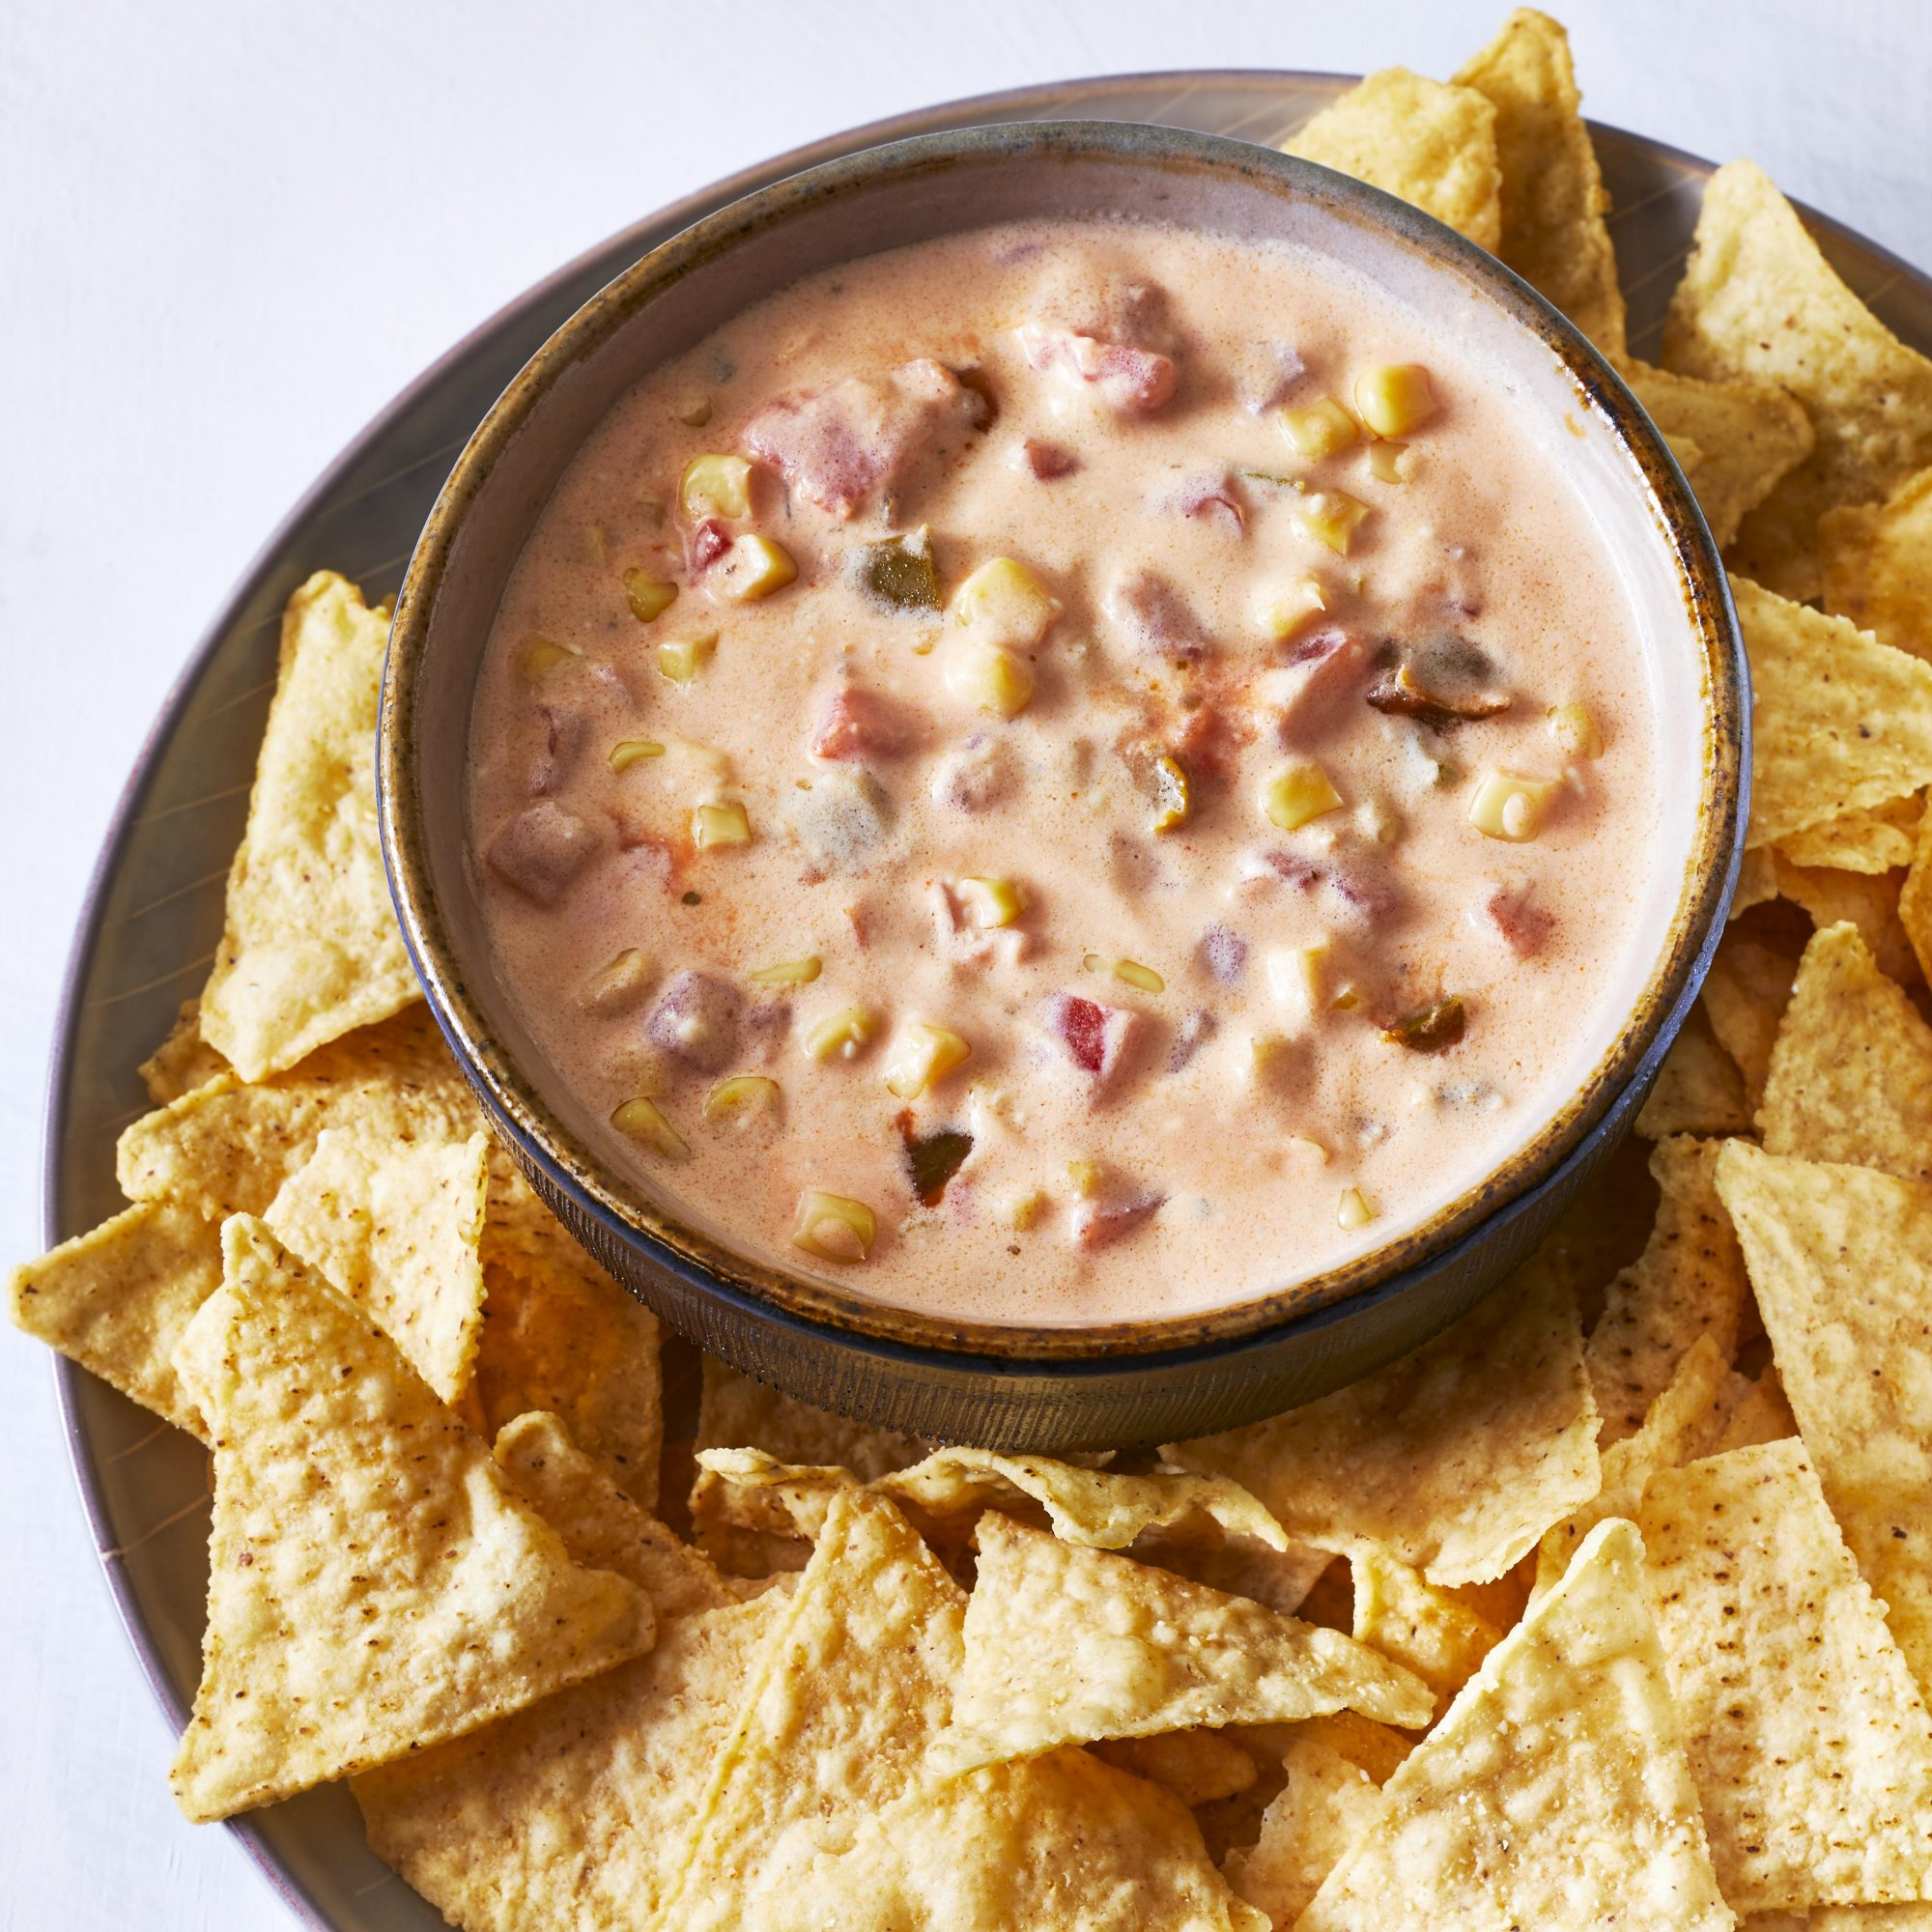 a bowl of Warm Mexican Corn Dip surrounded by tortilla chips on a platter